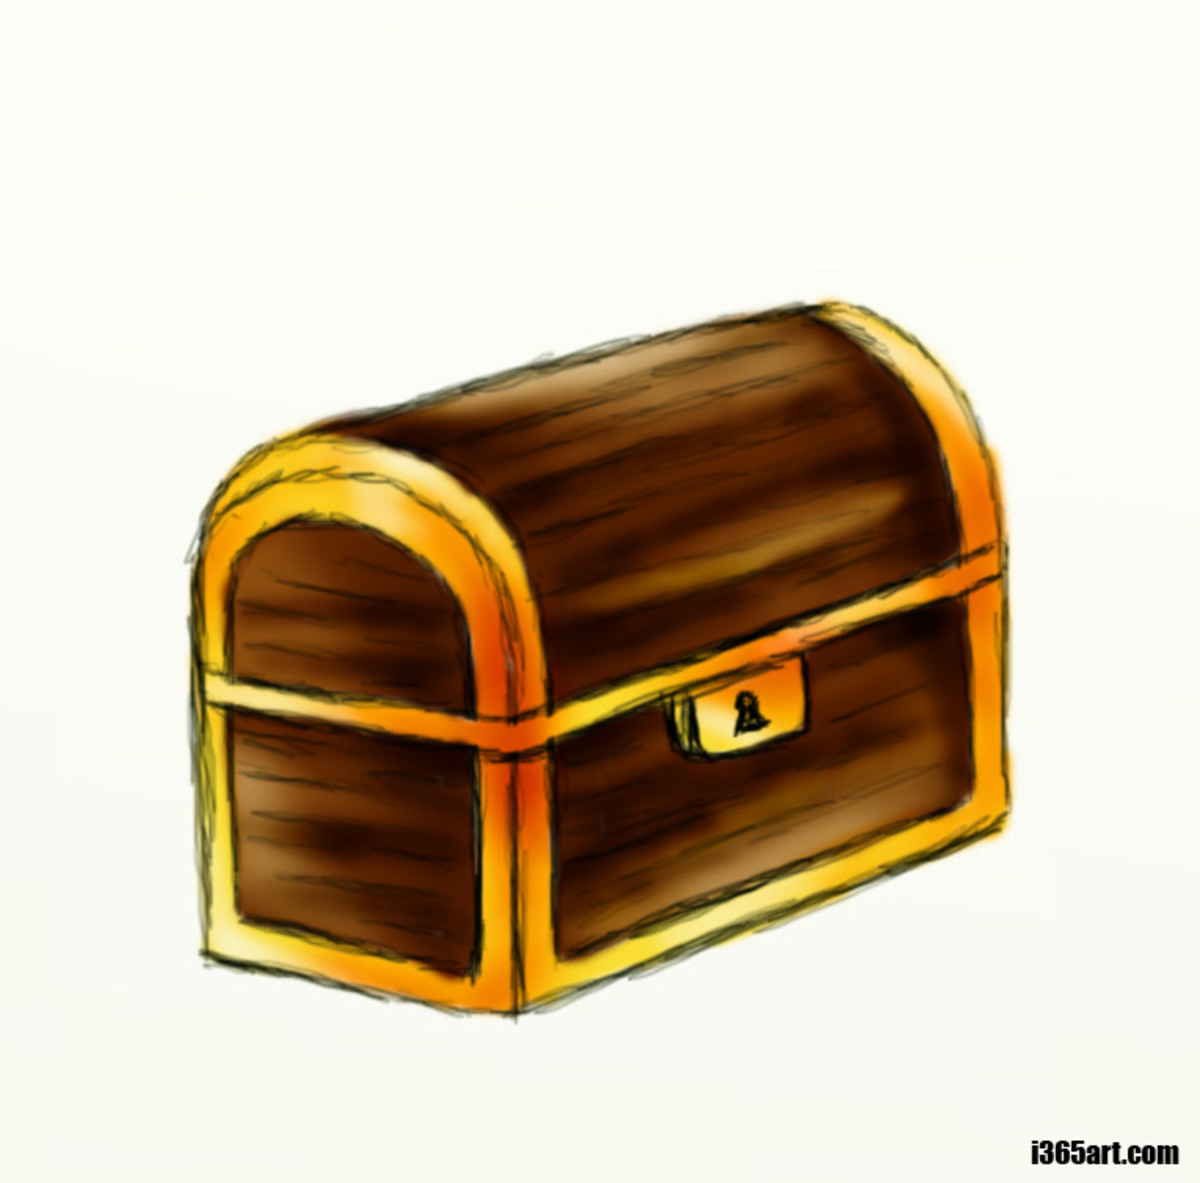 How to draw a treasure chest | hubpages